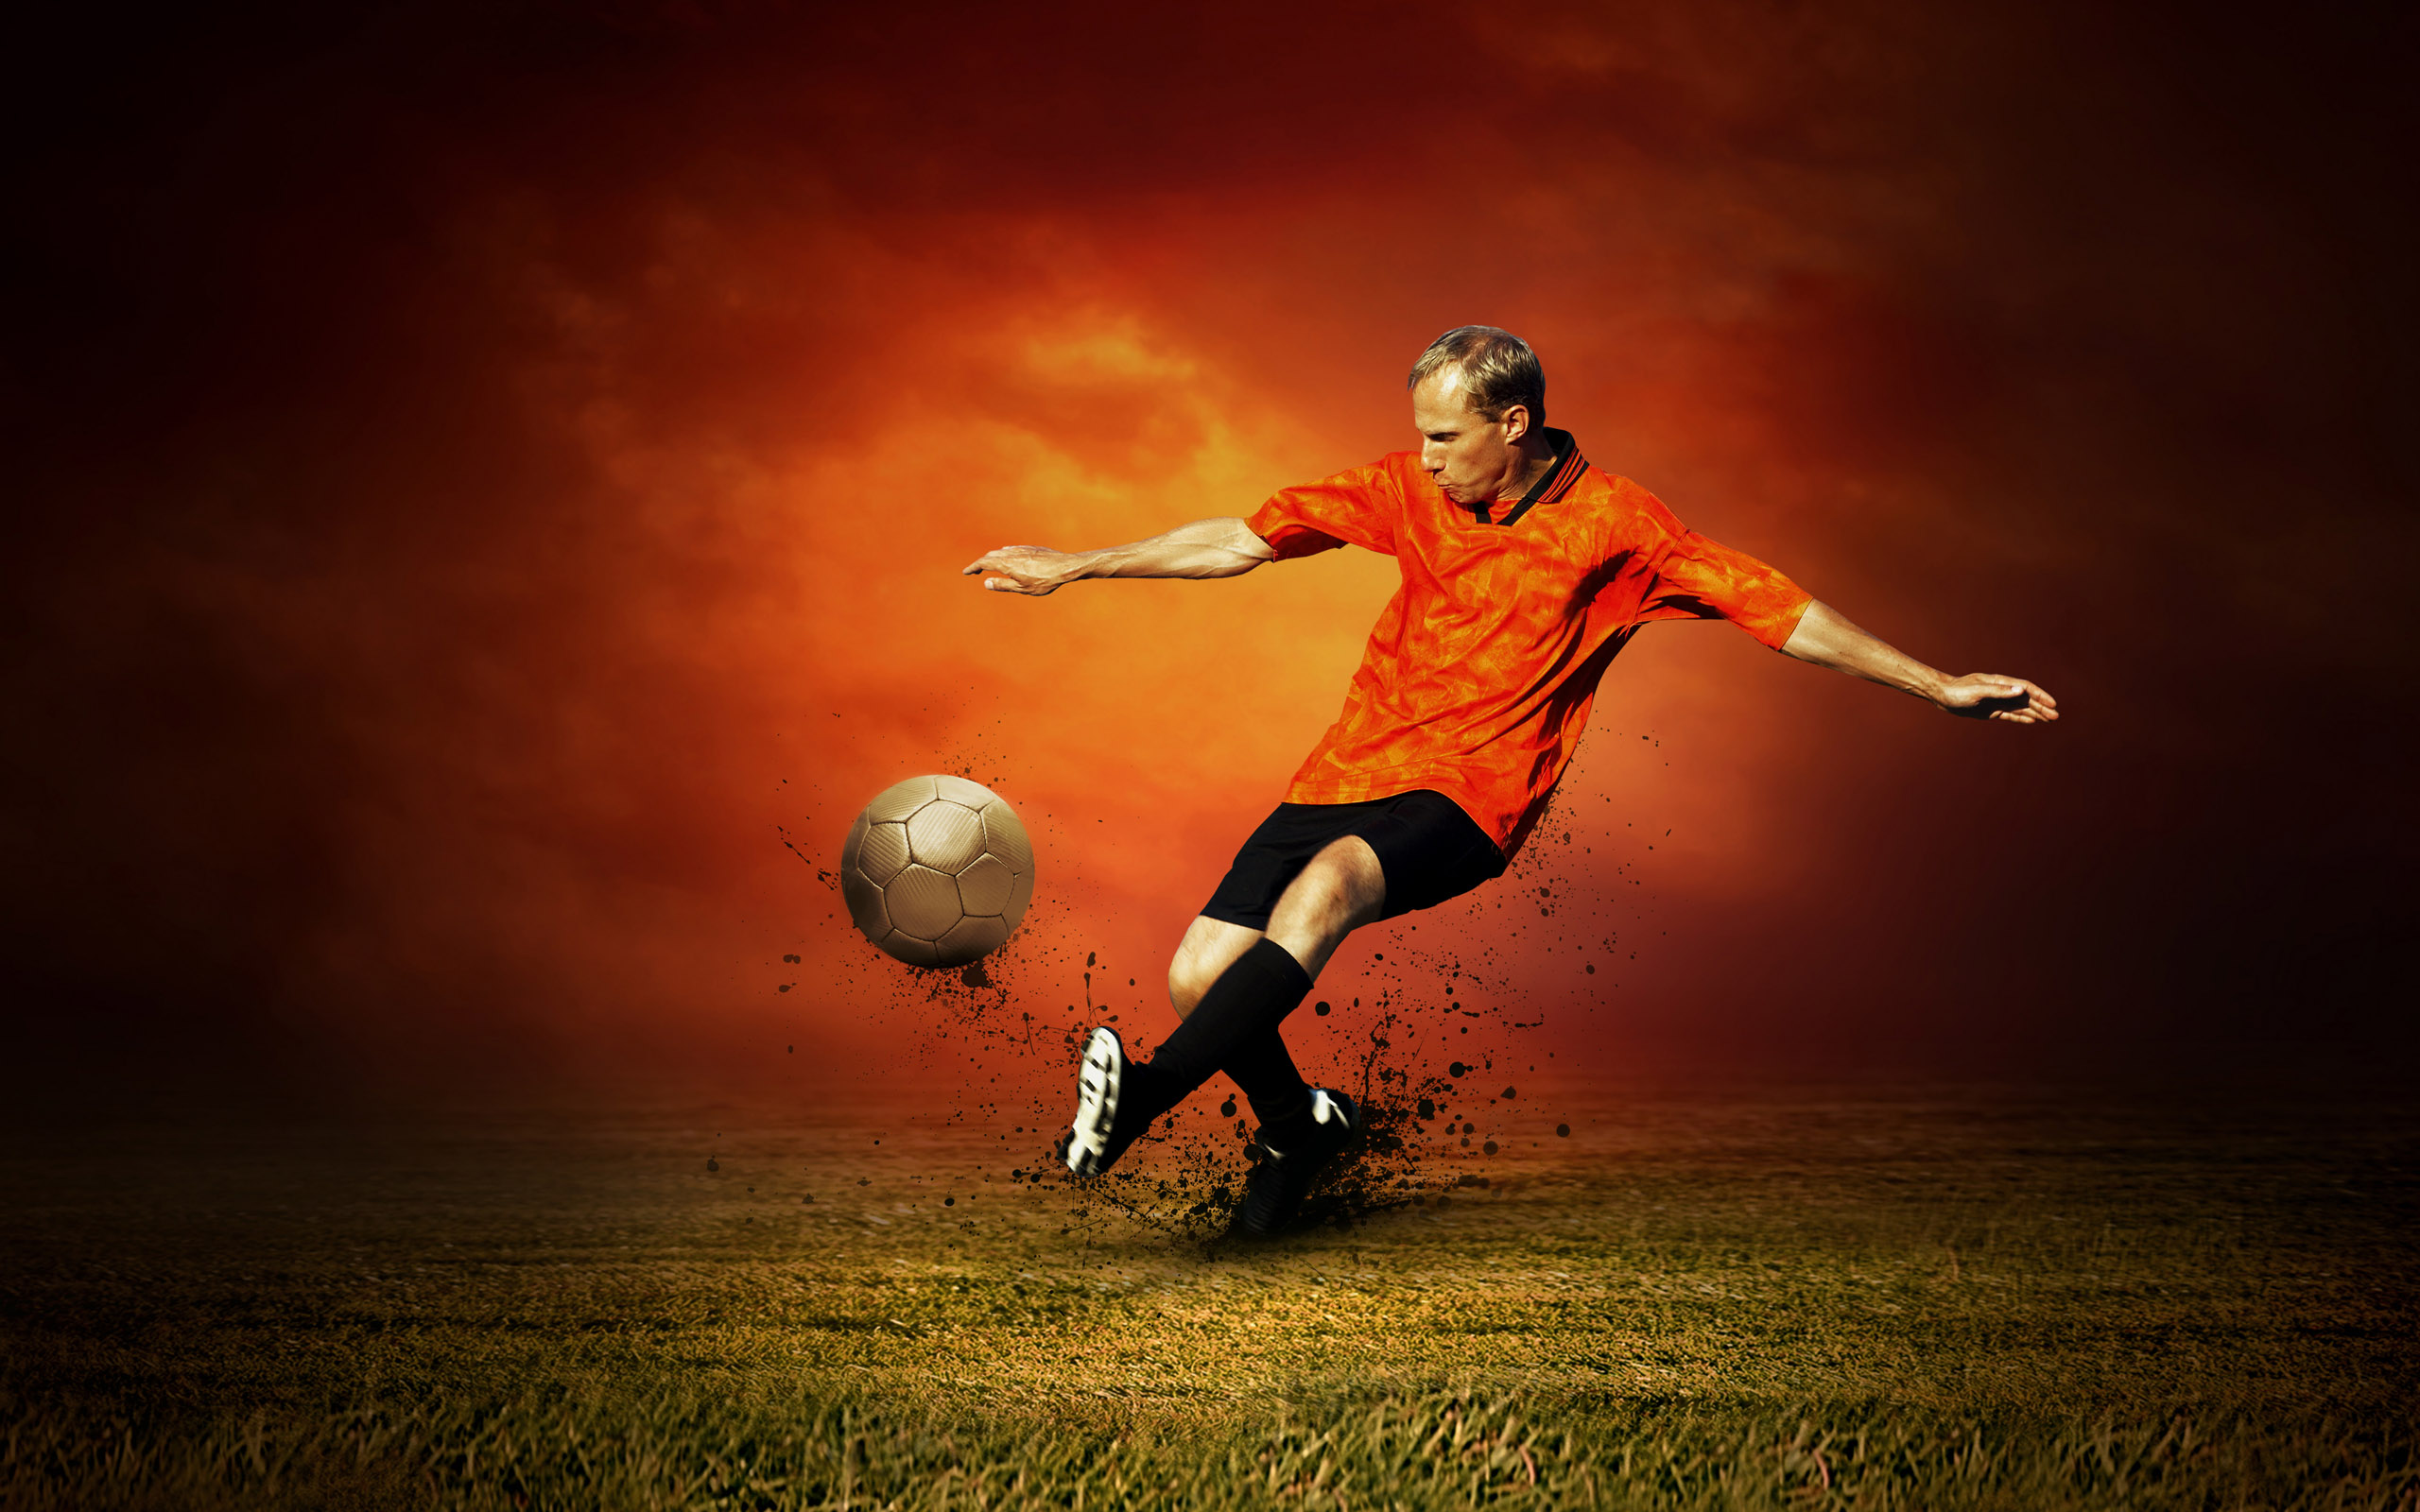 Free Soccer Wallpaper 12116